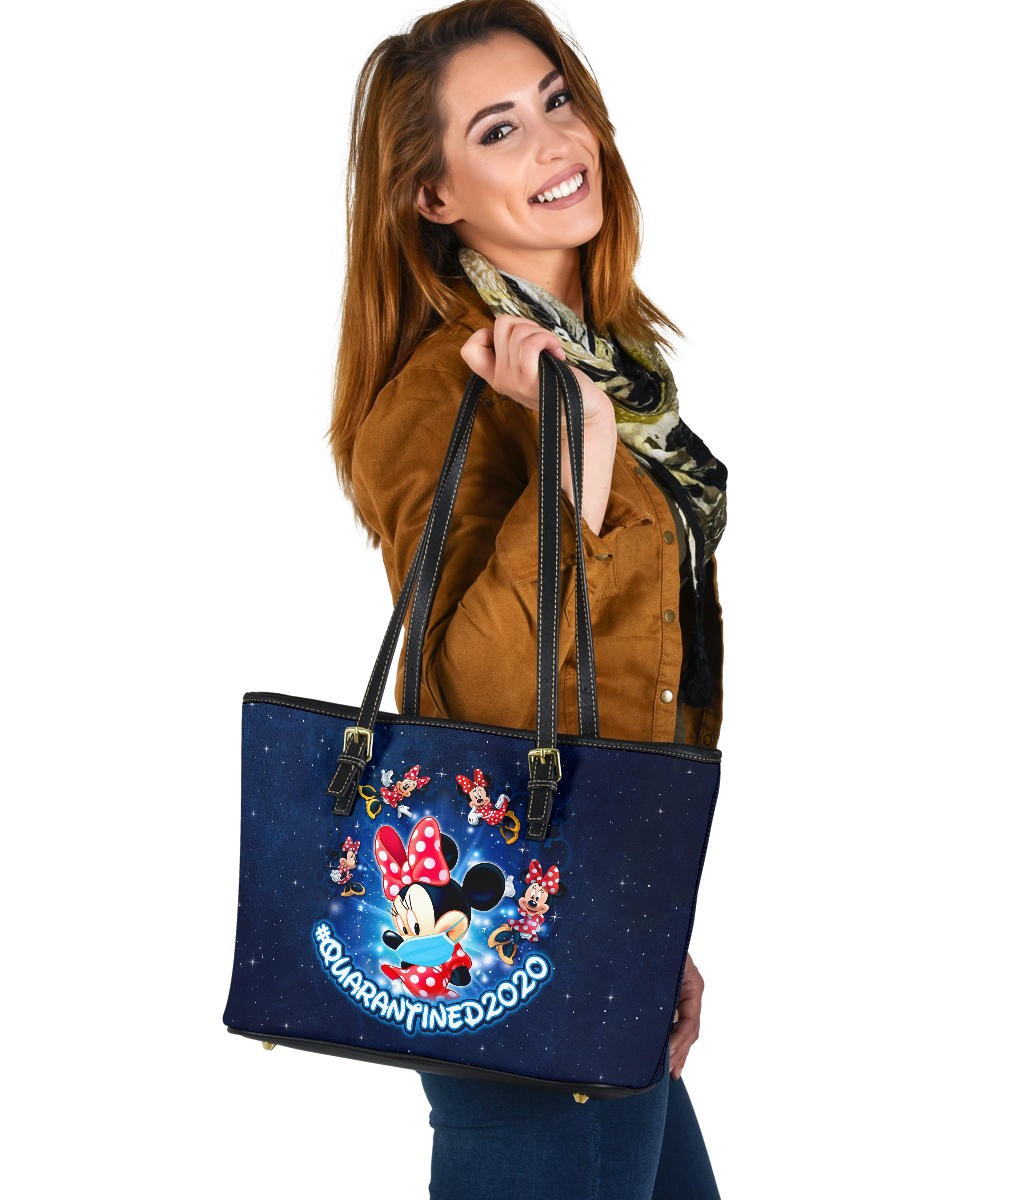 Minnie Quarantined tote